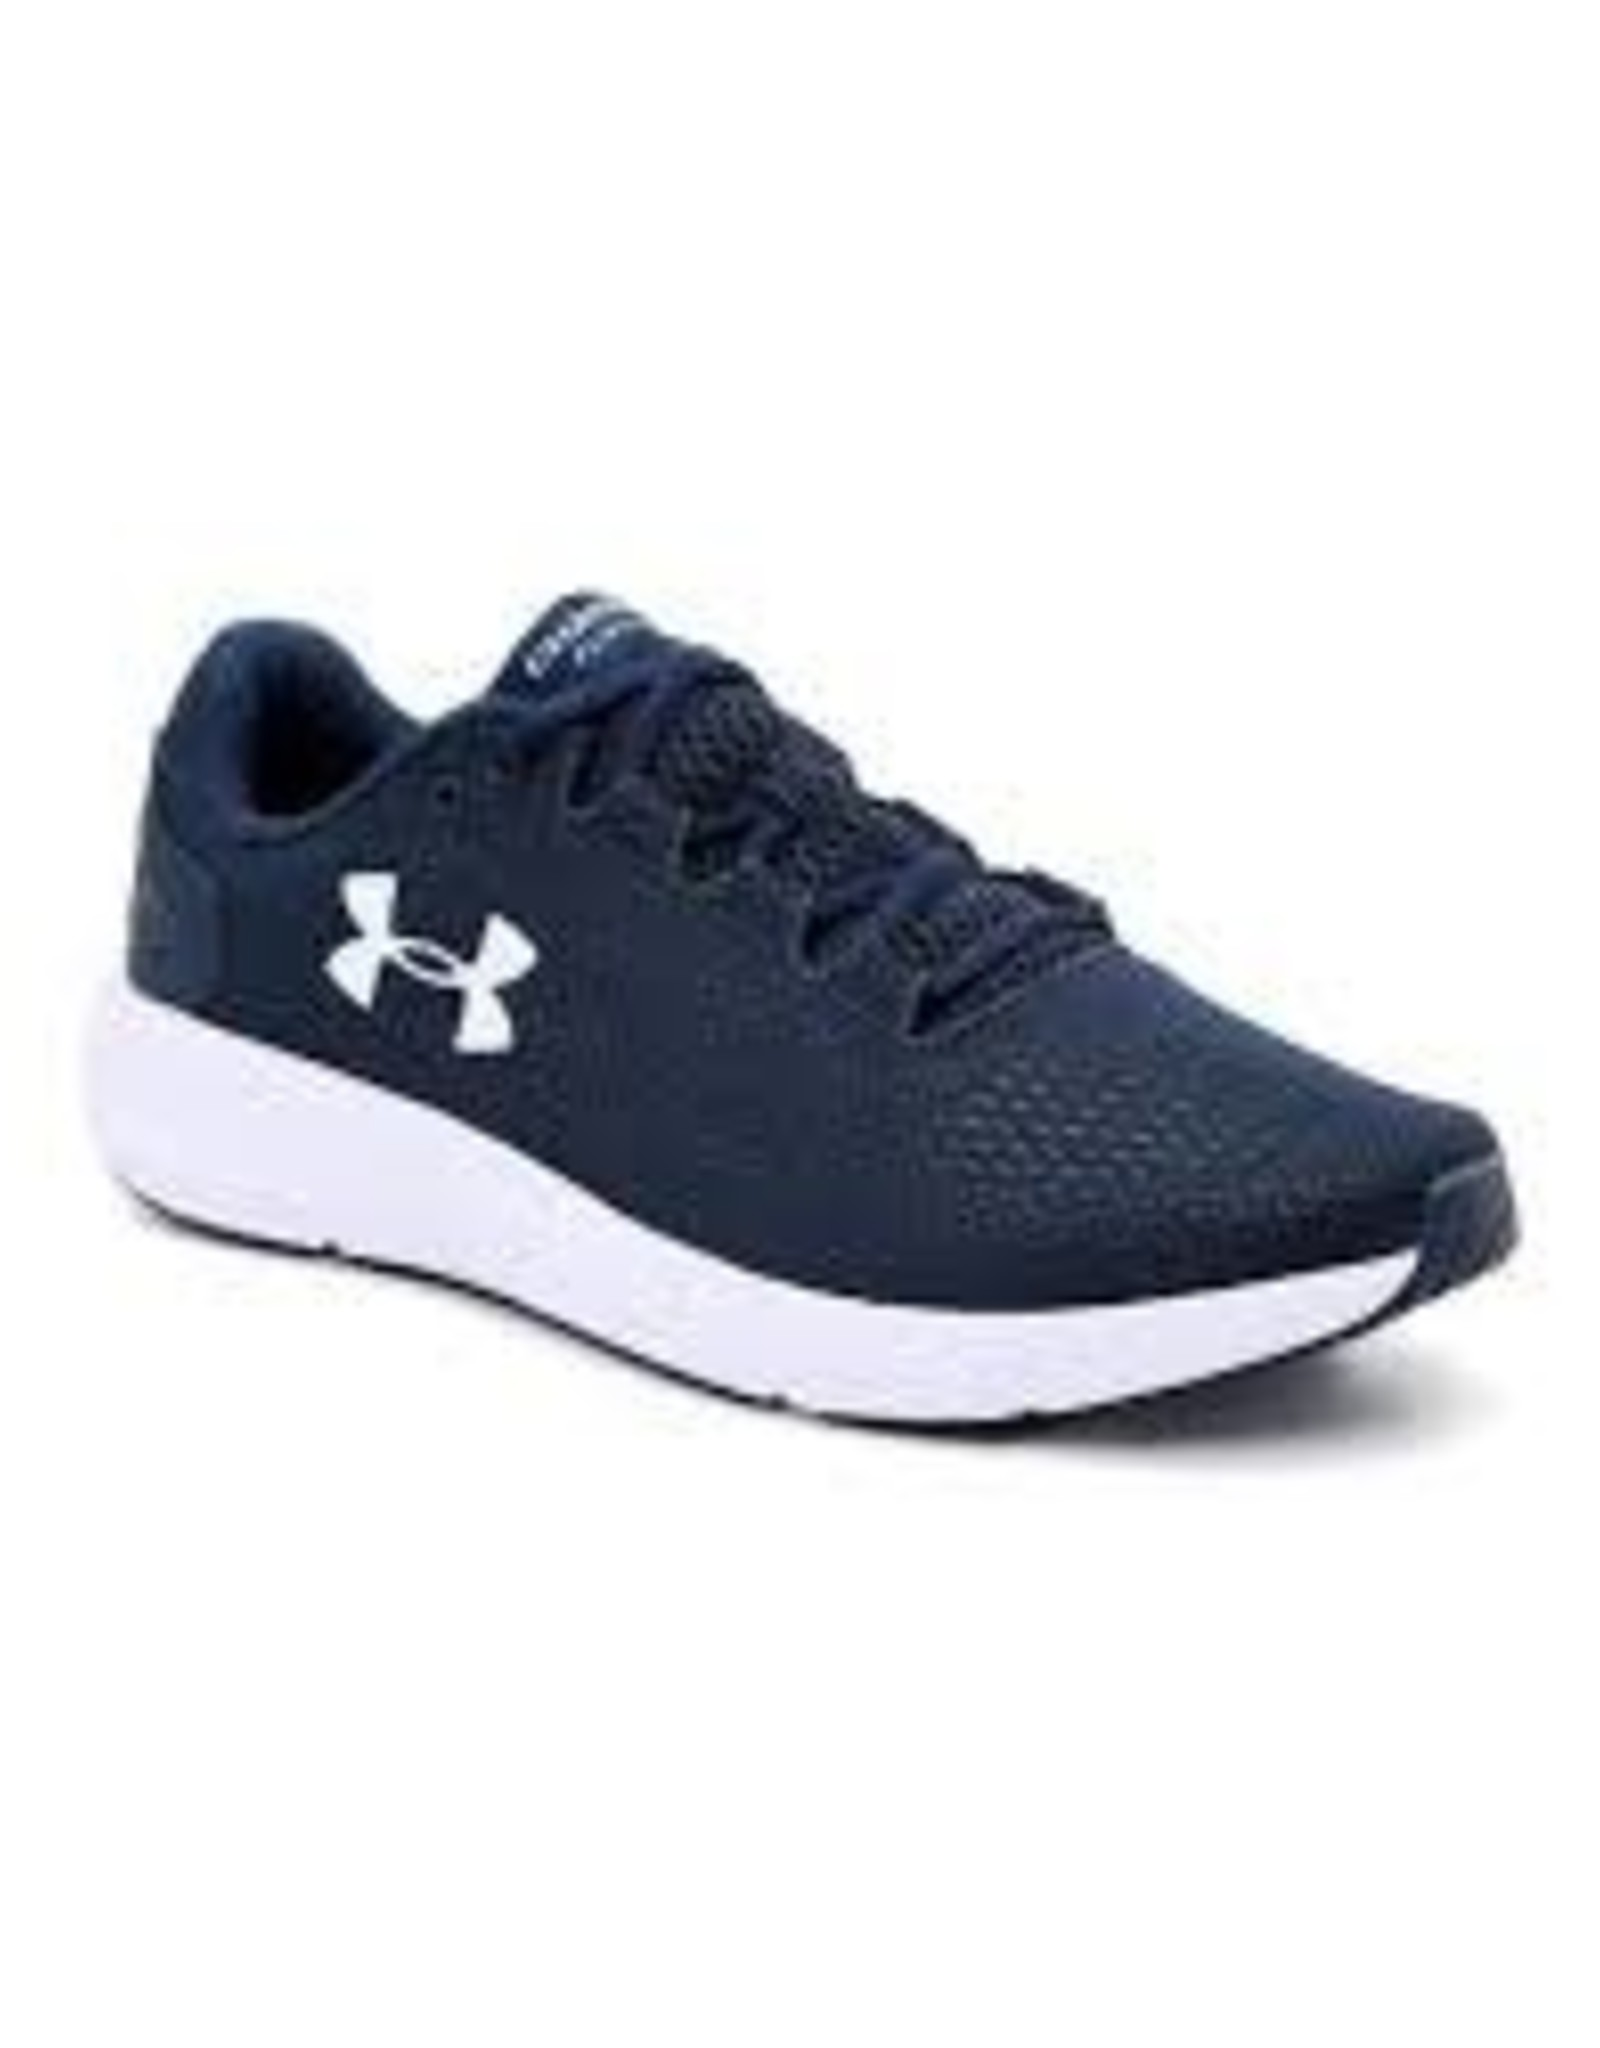 Mens UA Charged Pursuit 2 bleu 10